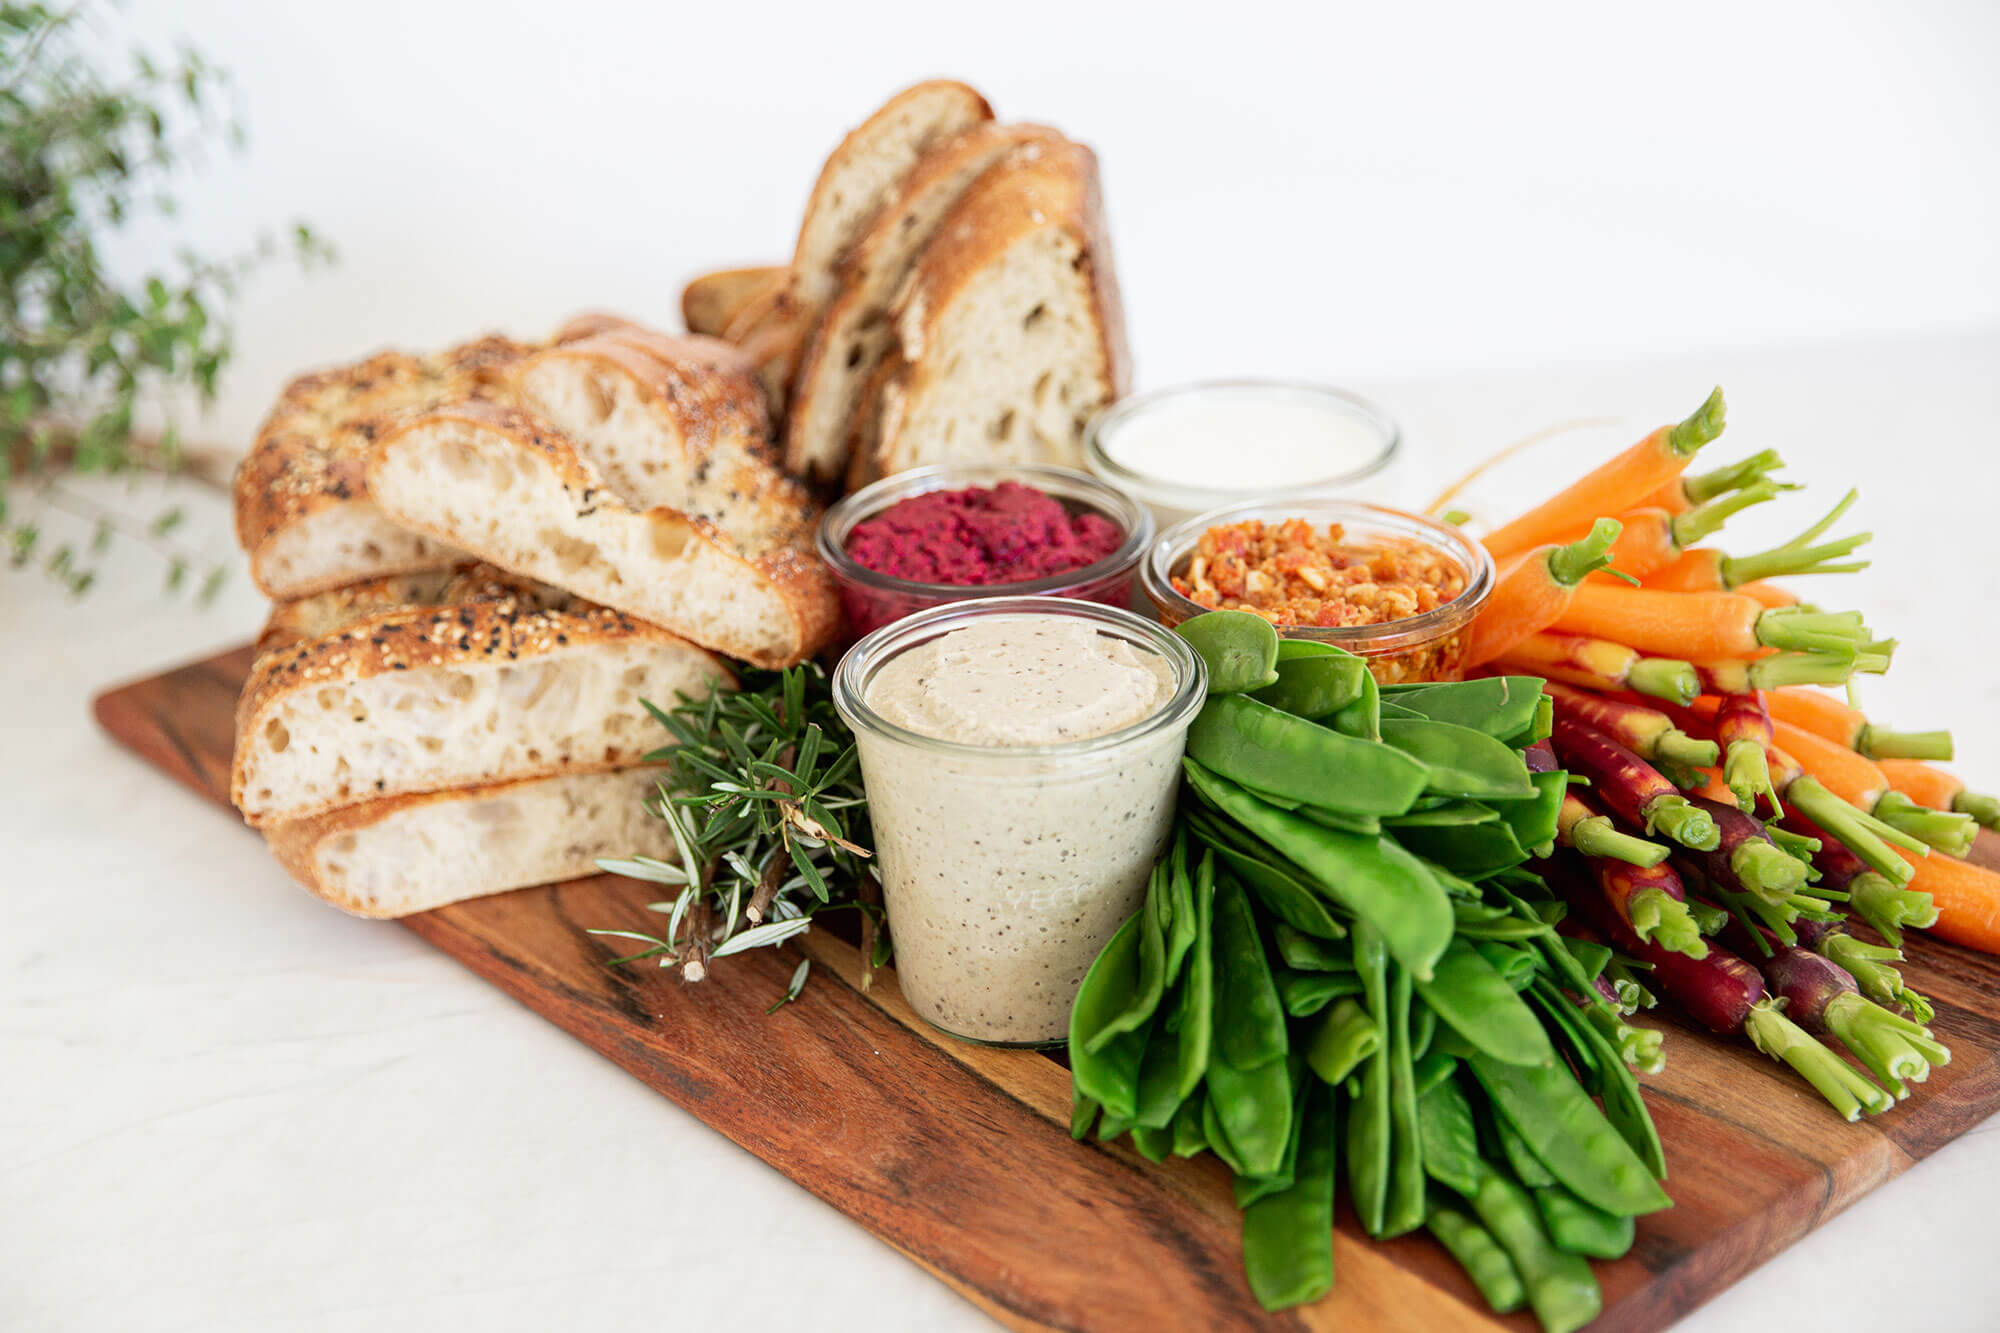 A platter with breads, dips and vegetables from Catroux's Platter Catering Menu